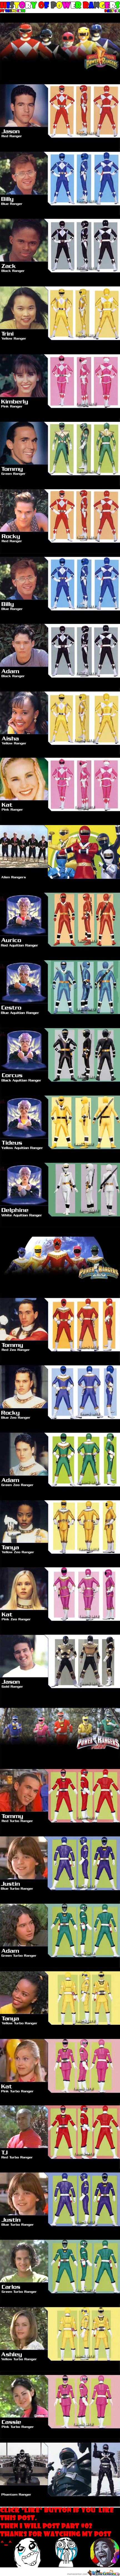 History Of Power Rangers: Part #01 (Please Feature Me) :p